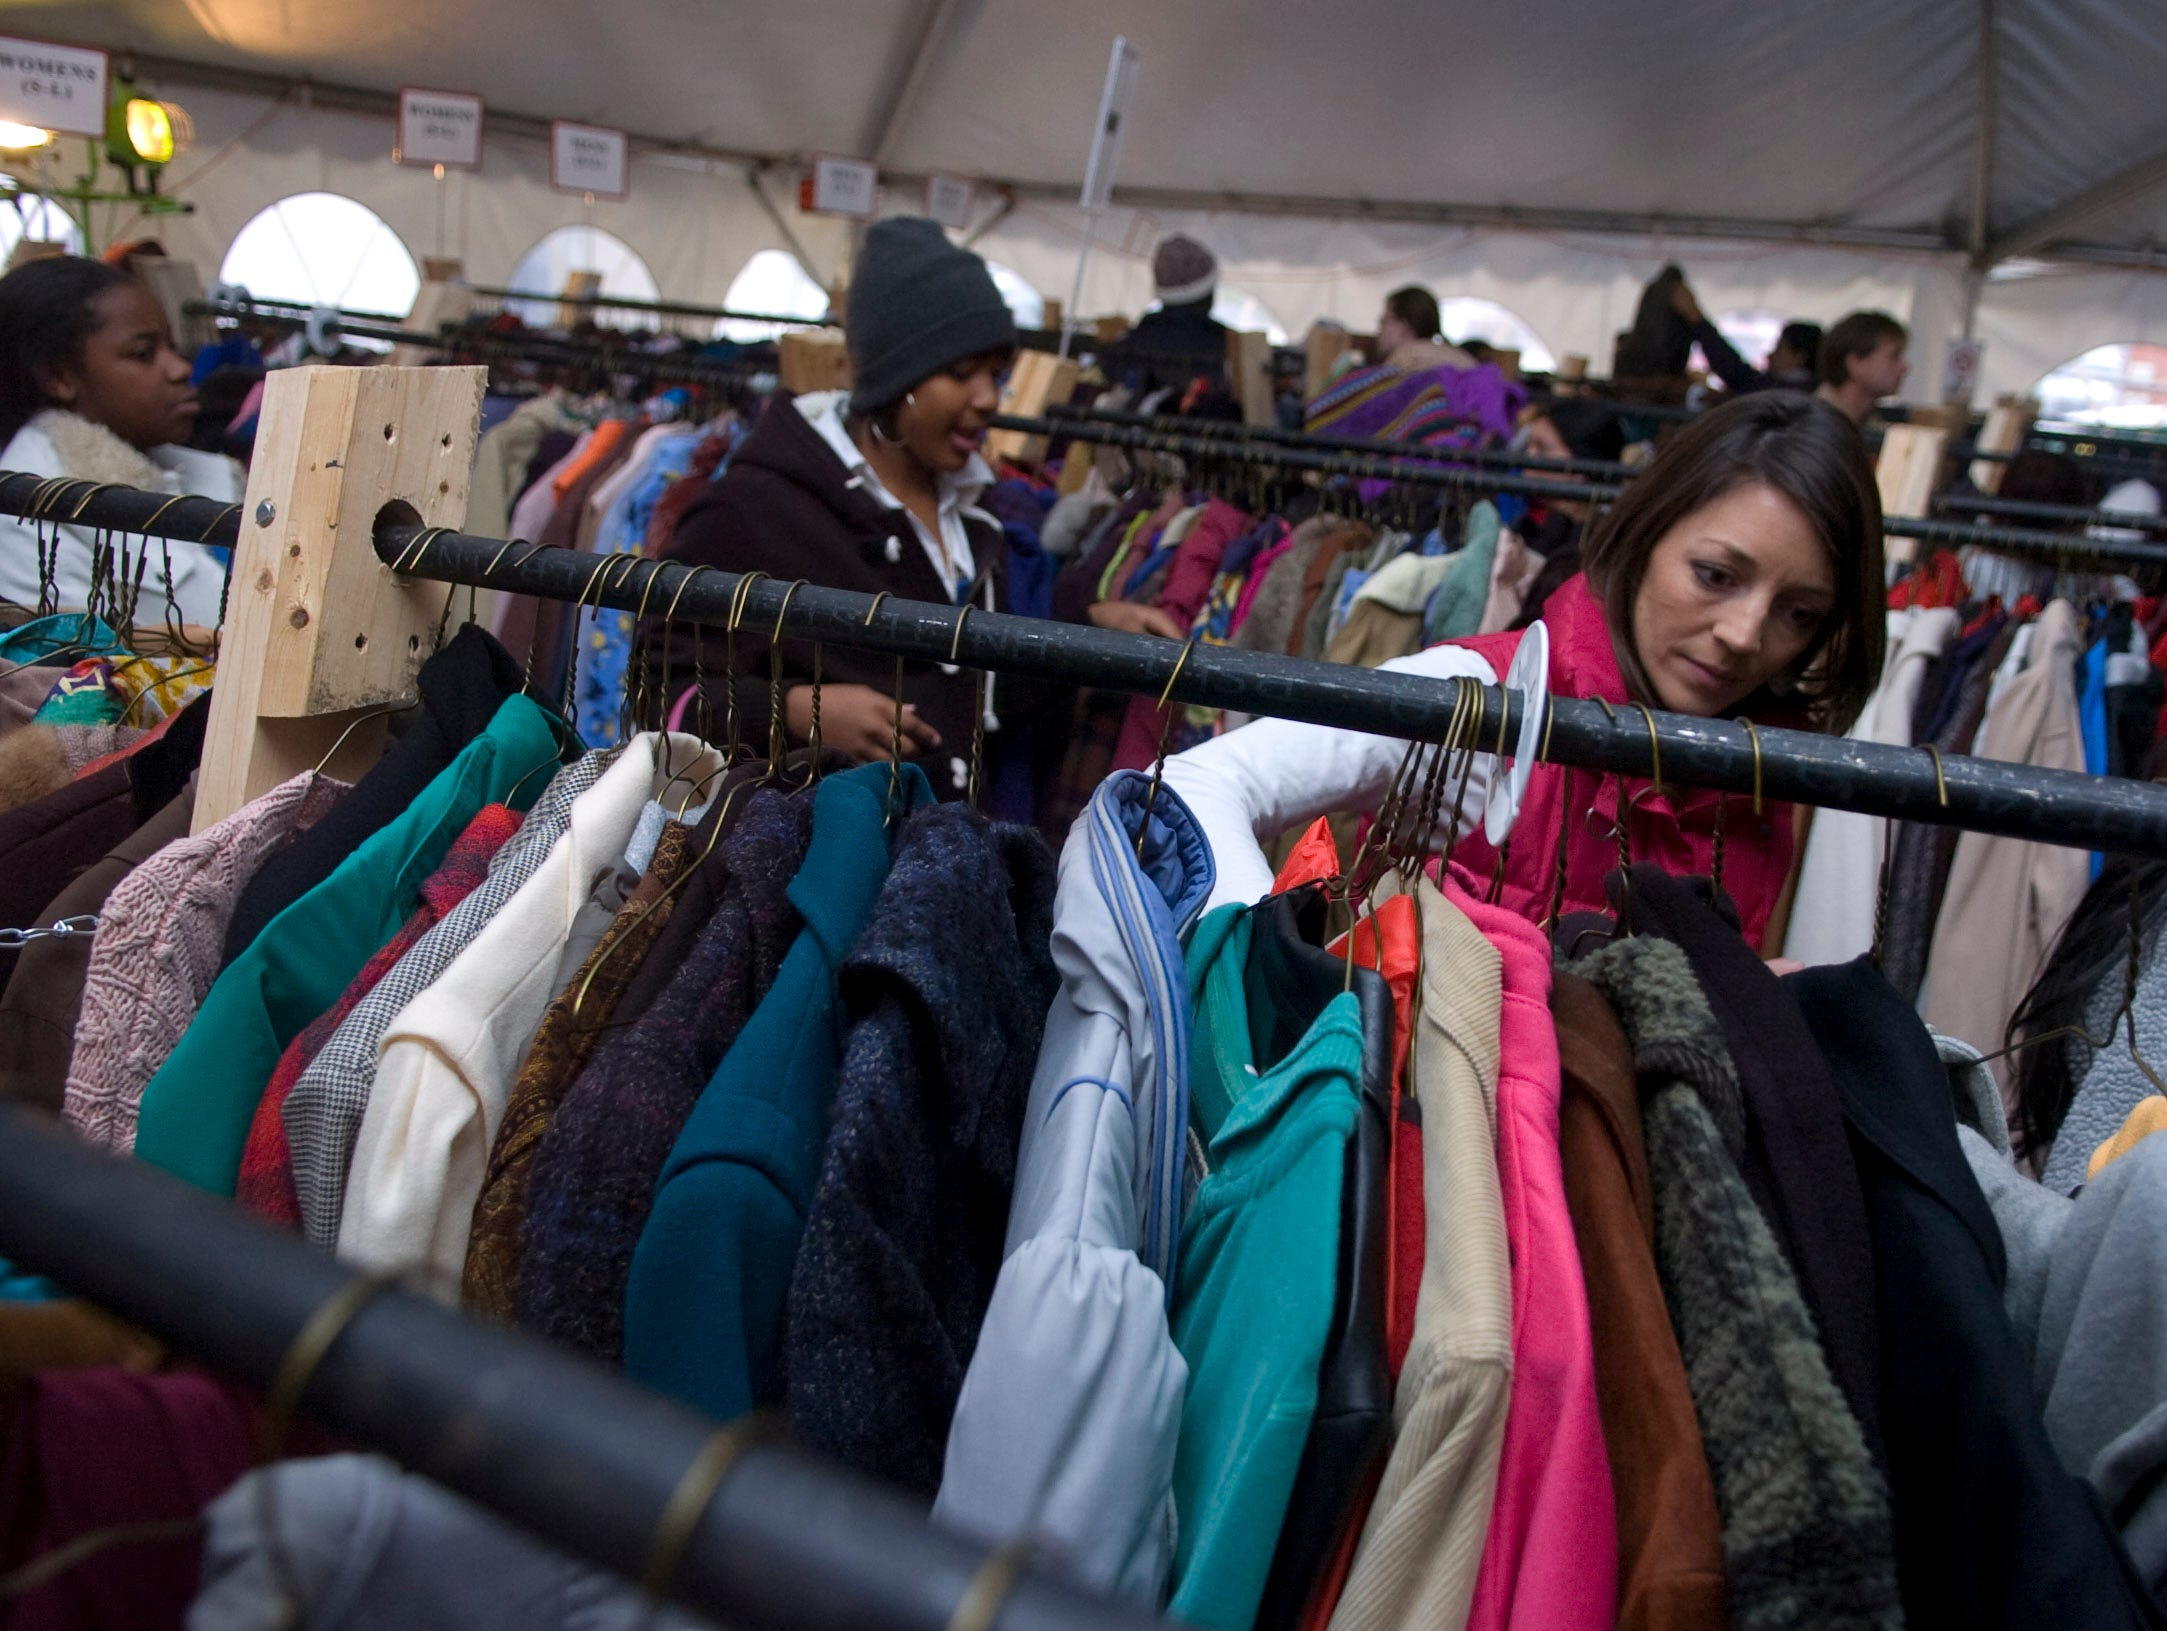 """Volunteer Kristen Slack helps a family to pick out coats at the Knoxville Area Rescue Ministries coat tent on Saturday, Dec. 4, 2010. The 25th anniversary of the annual """"Coats for the Cold"""" offered free coat distribution to any needy individual in the East Tennessee area. As many as 2,000 people received the 8,000 coats collected at the KARM Thrift Store at 733 Hall of Fame Drive. Each coat was cleaned free of charge by Prestige Cleaners."""